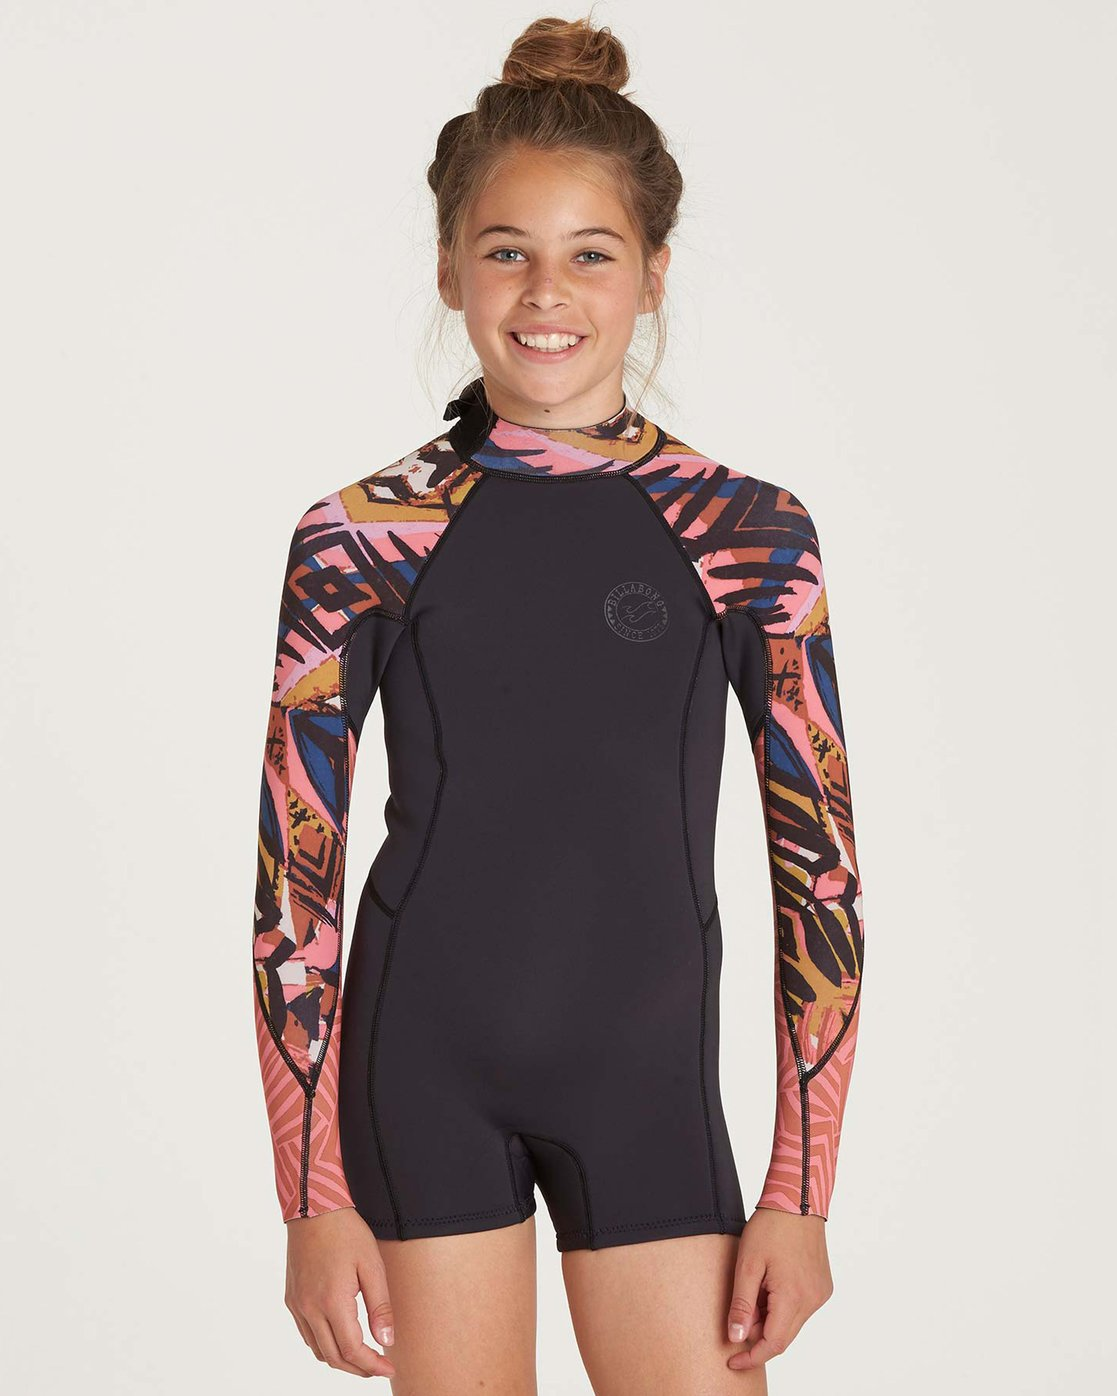 306719d9223f 0 Girls' Spring Fever Long Sleeve Back Zip Springsuit GWSPNBSF Billabong